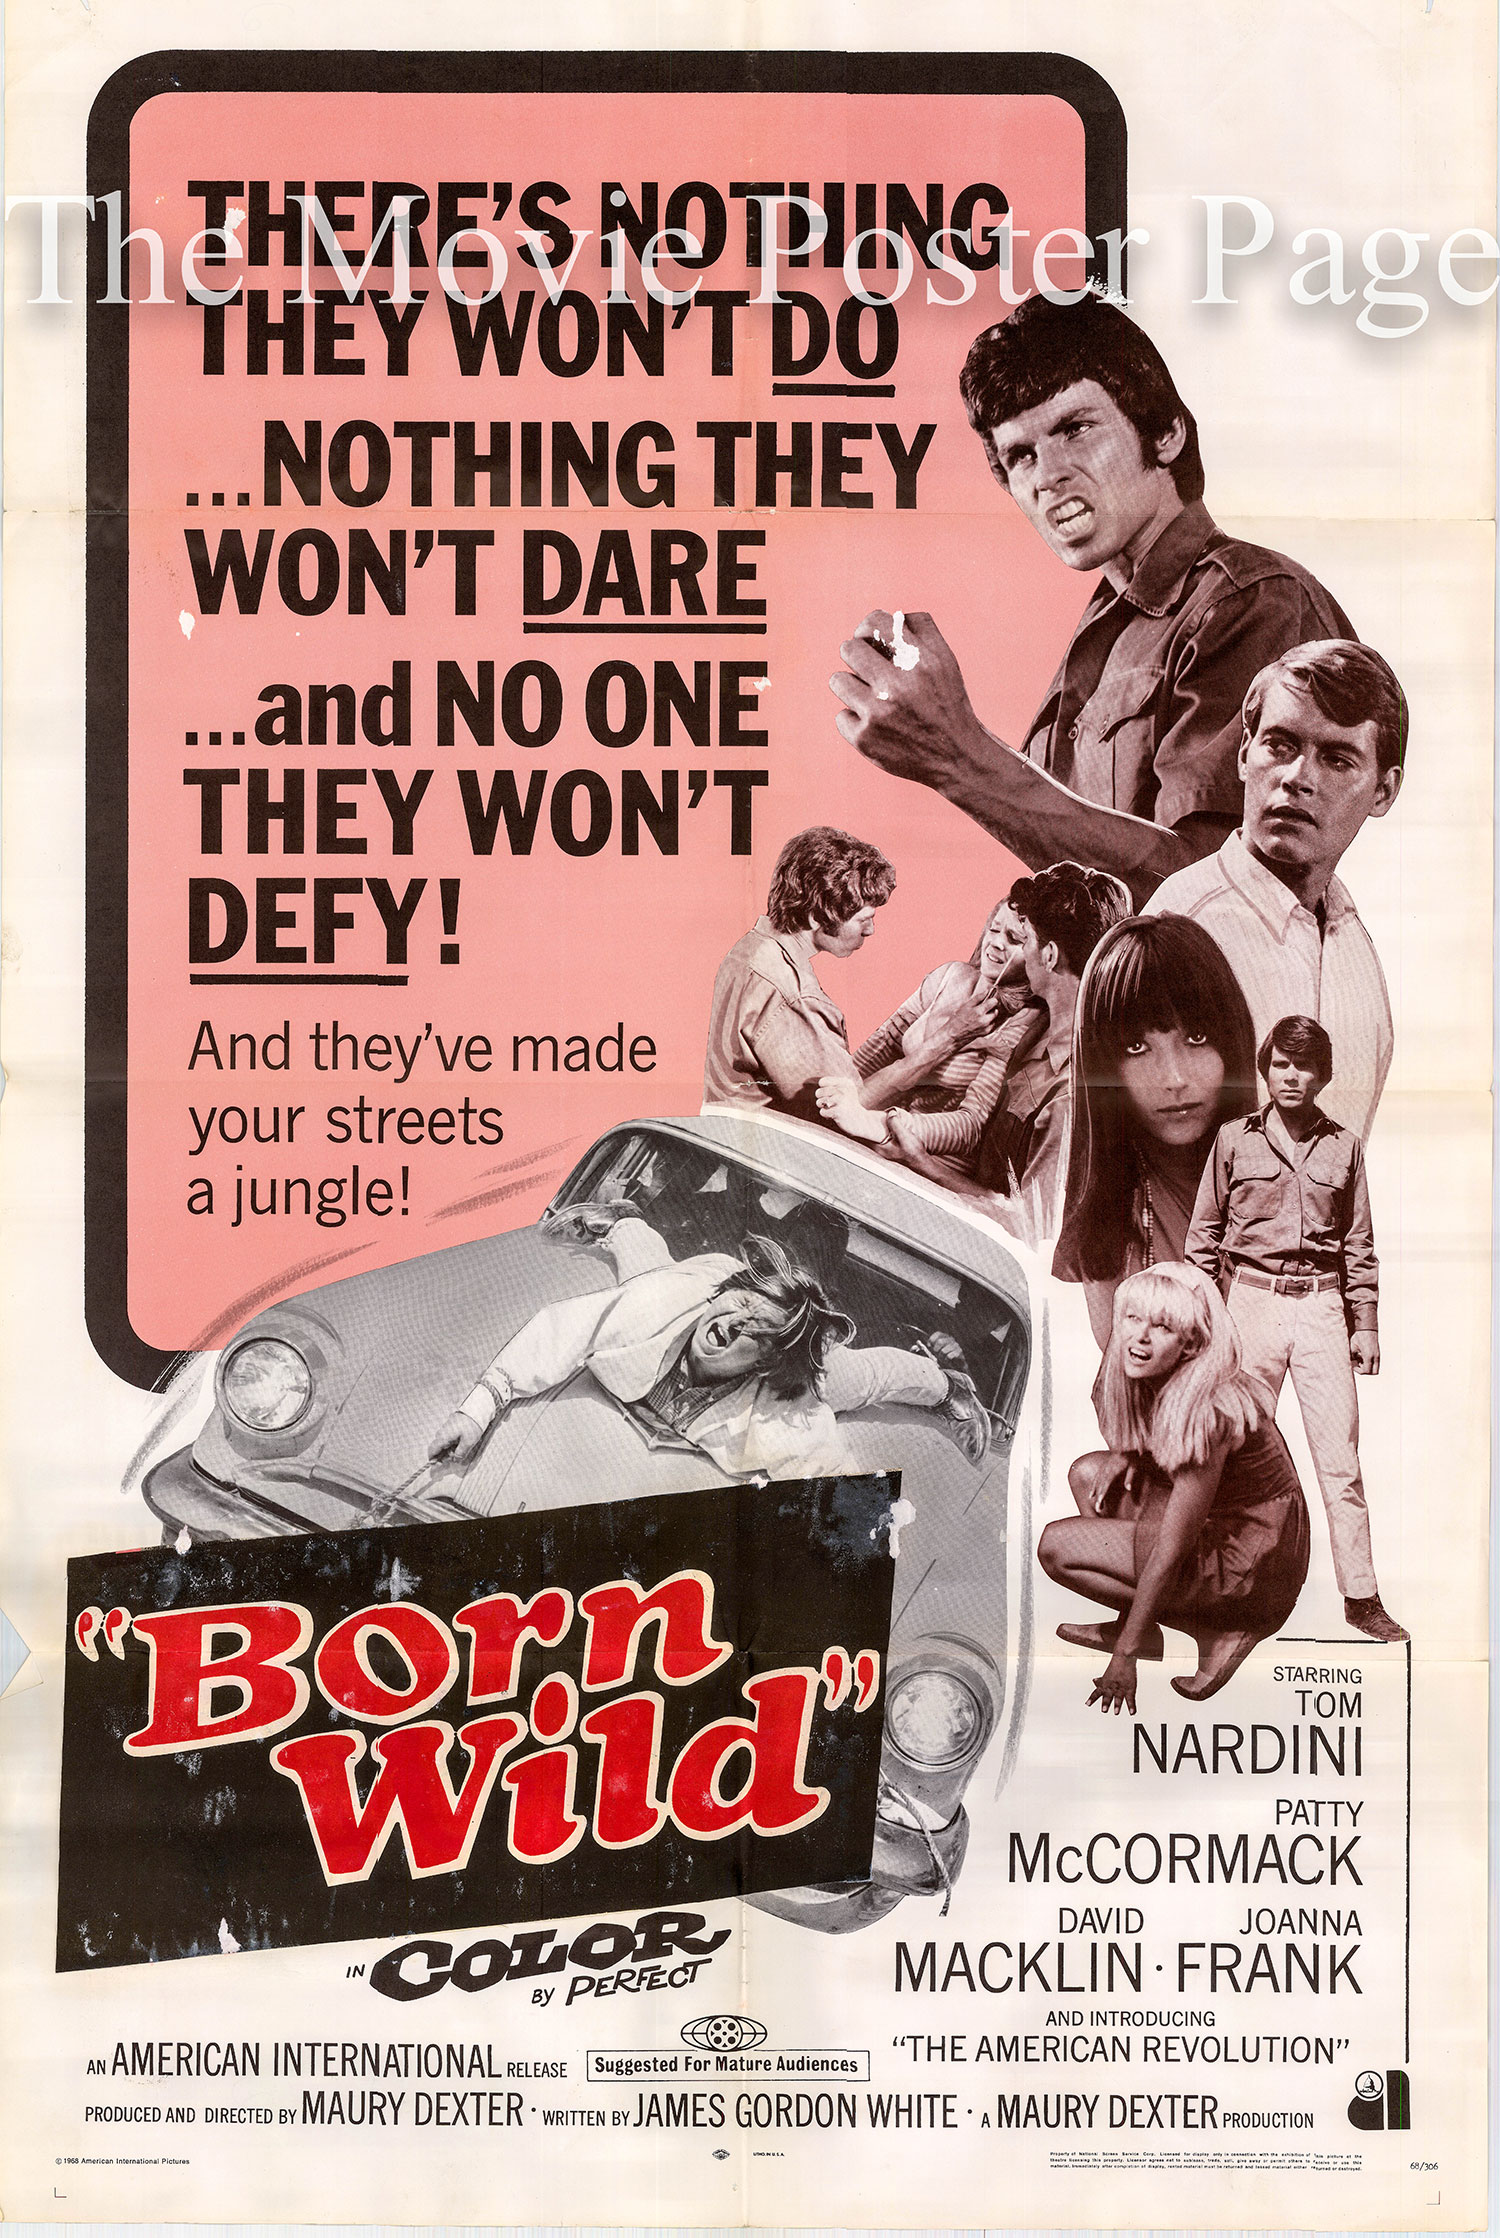 Pictured is the US one-sheet promotional poster for the 1968 Maury Dexter film Born Wild, starring Tom Nardini.